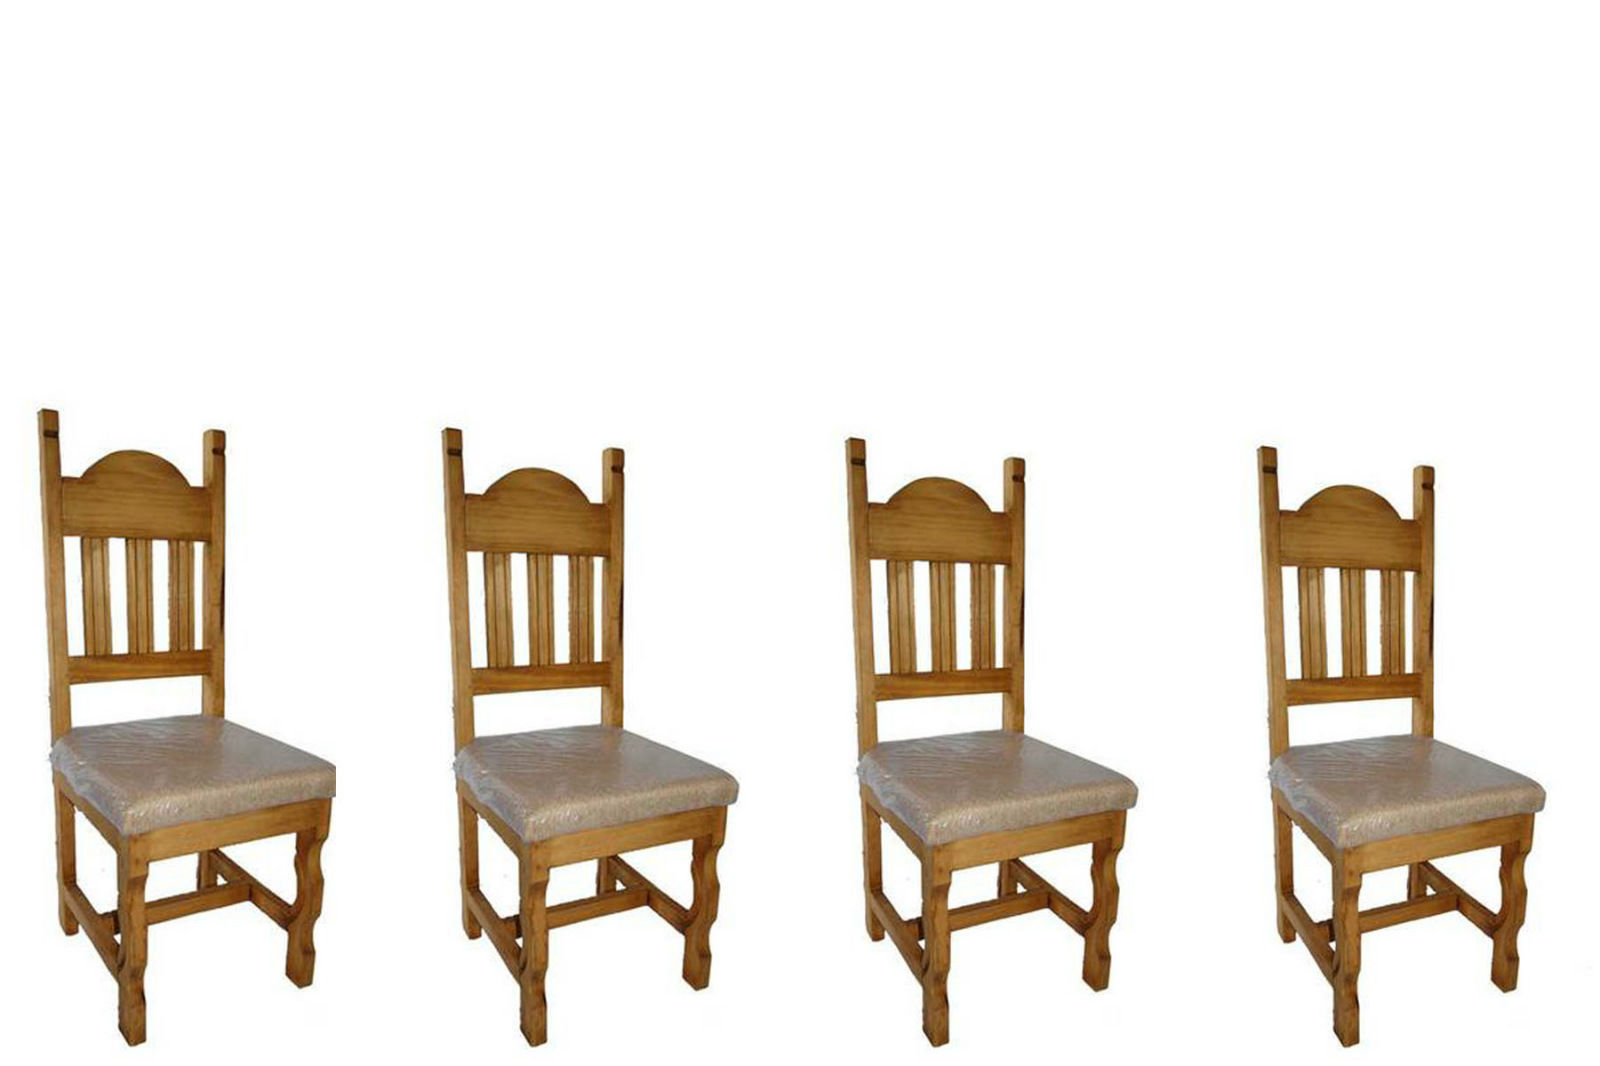 Set of Four Padded Seat Chair Real Solid Wood Rustic Western Cabin Lodge